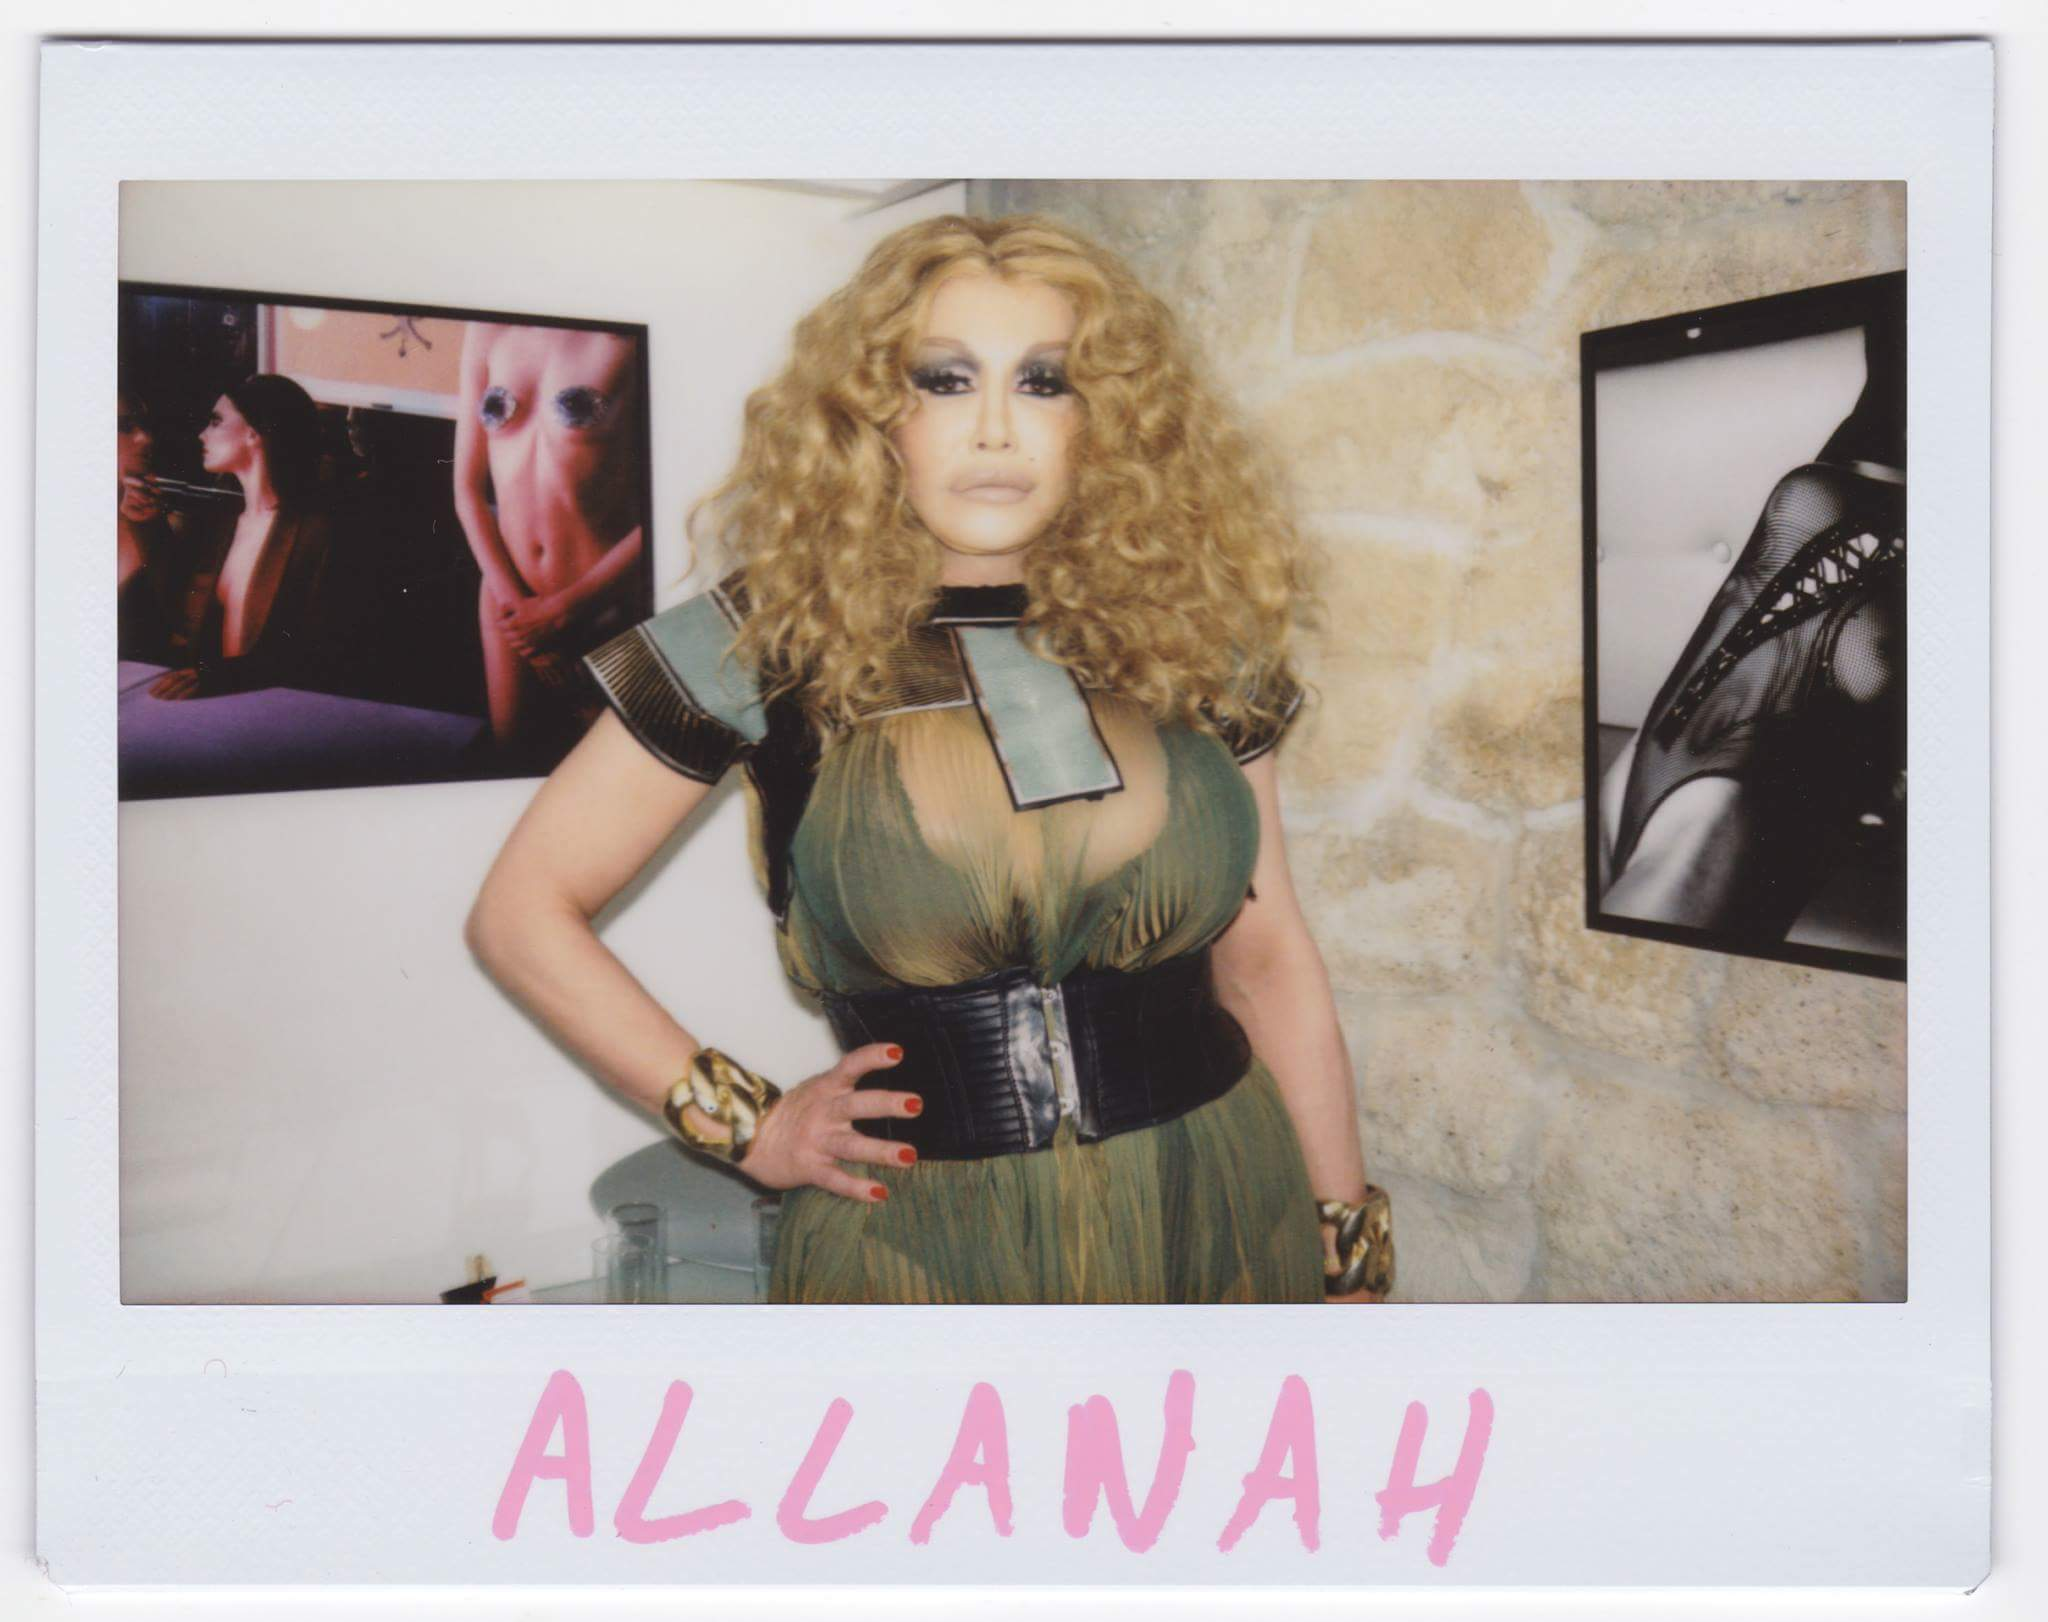 "Allanah Starr allanah starr on twitter: ""polaroid from last night at"